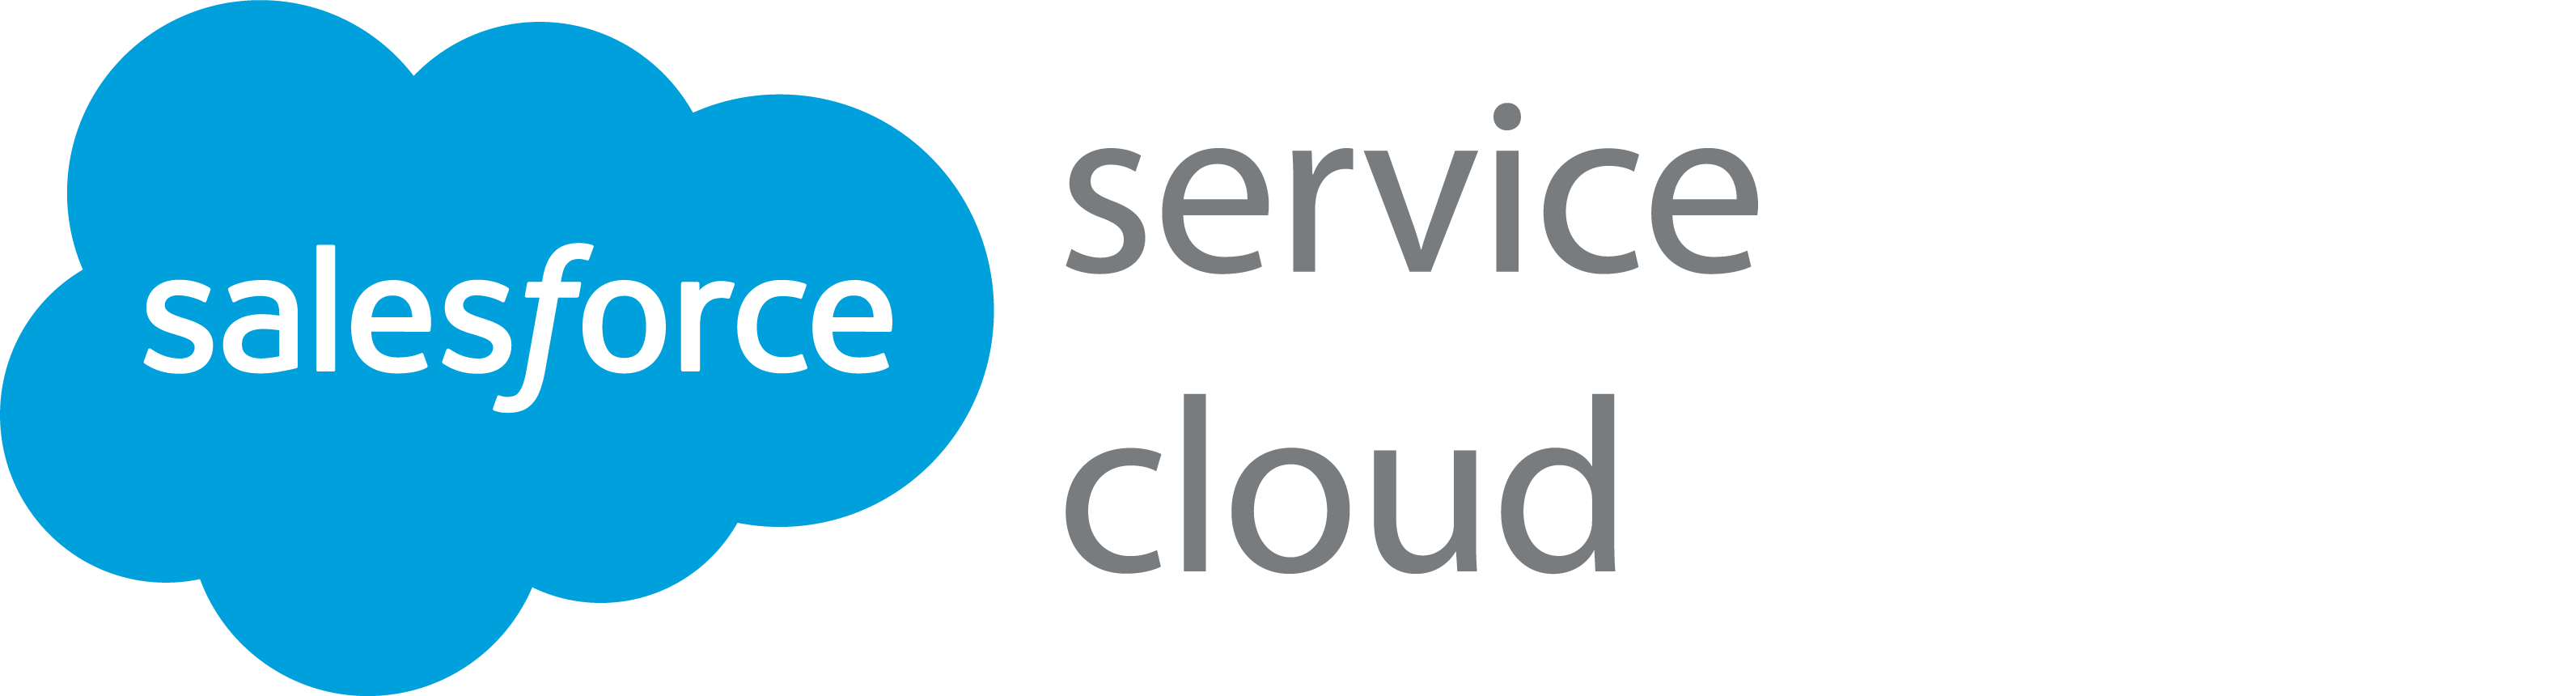 service-cloud-logo